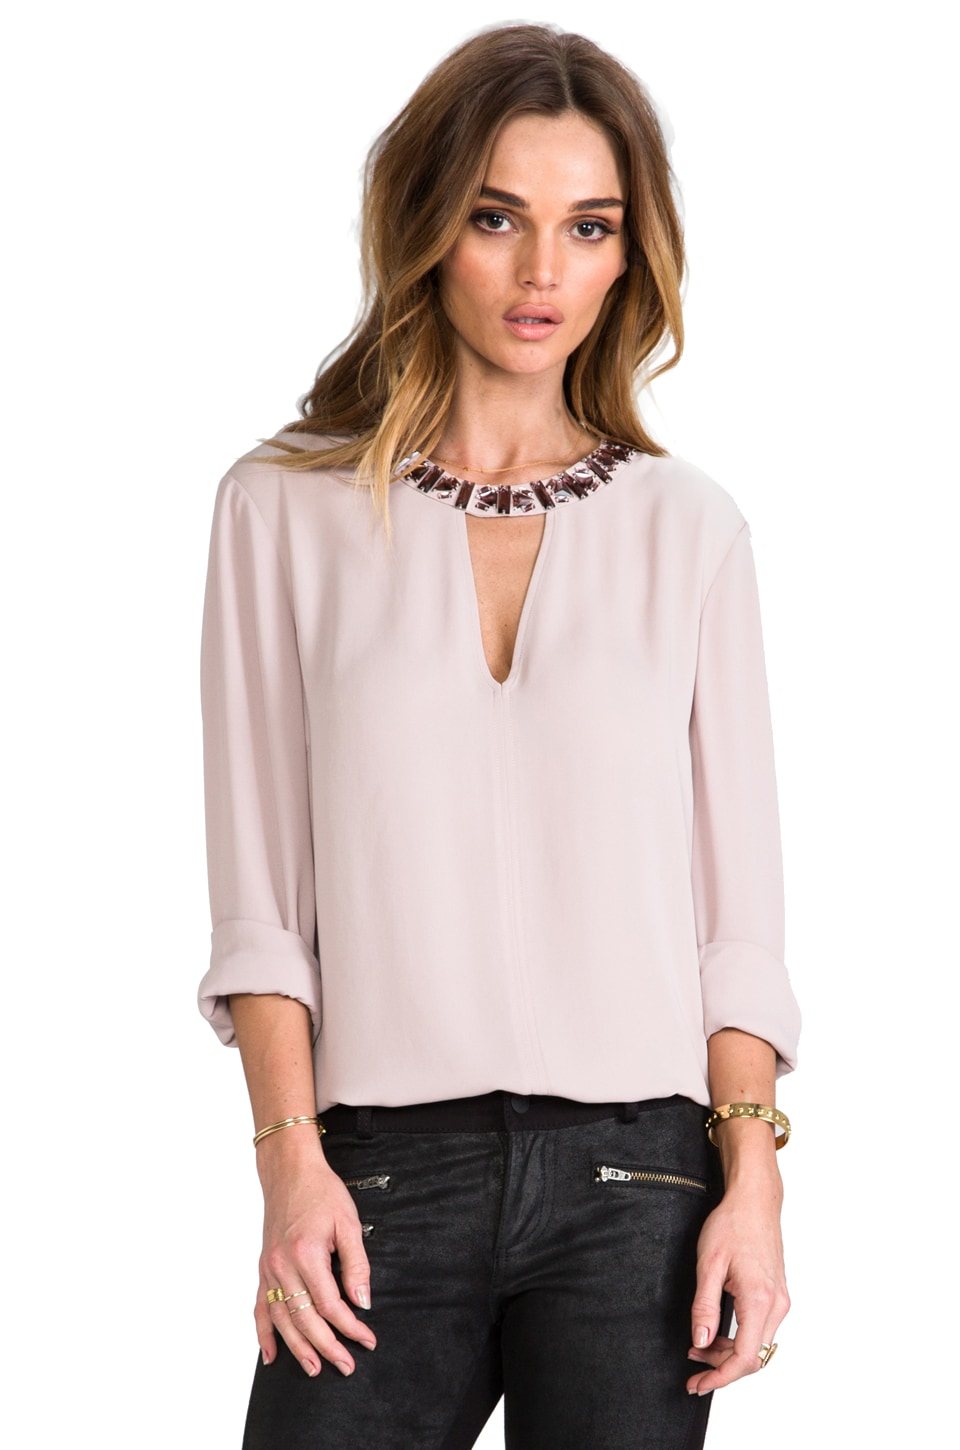 BCBGMAXAZRIA Frances Blouse in Mauve Rose